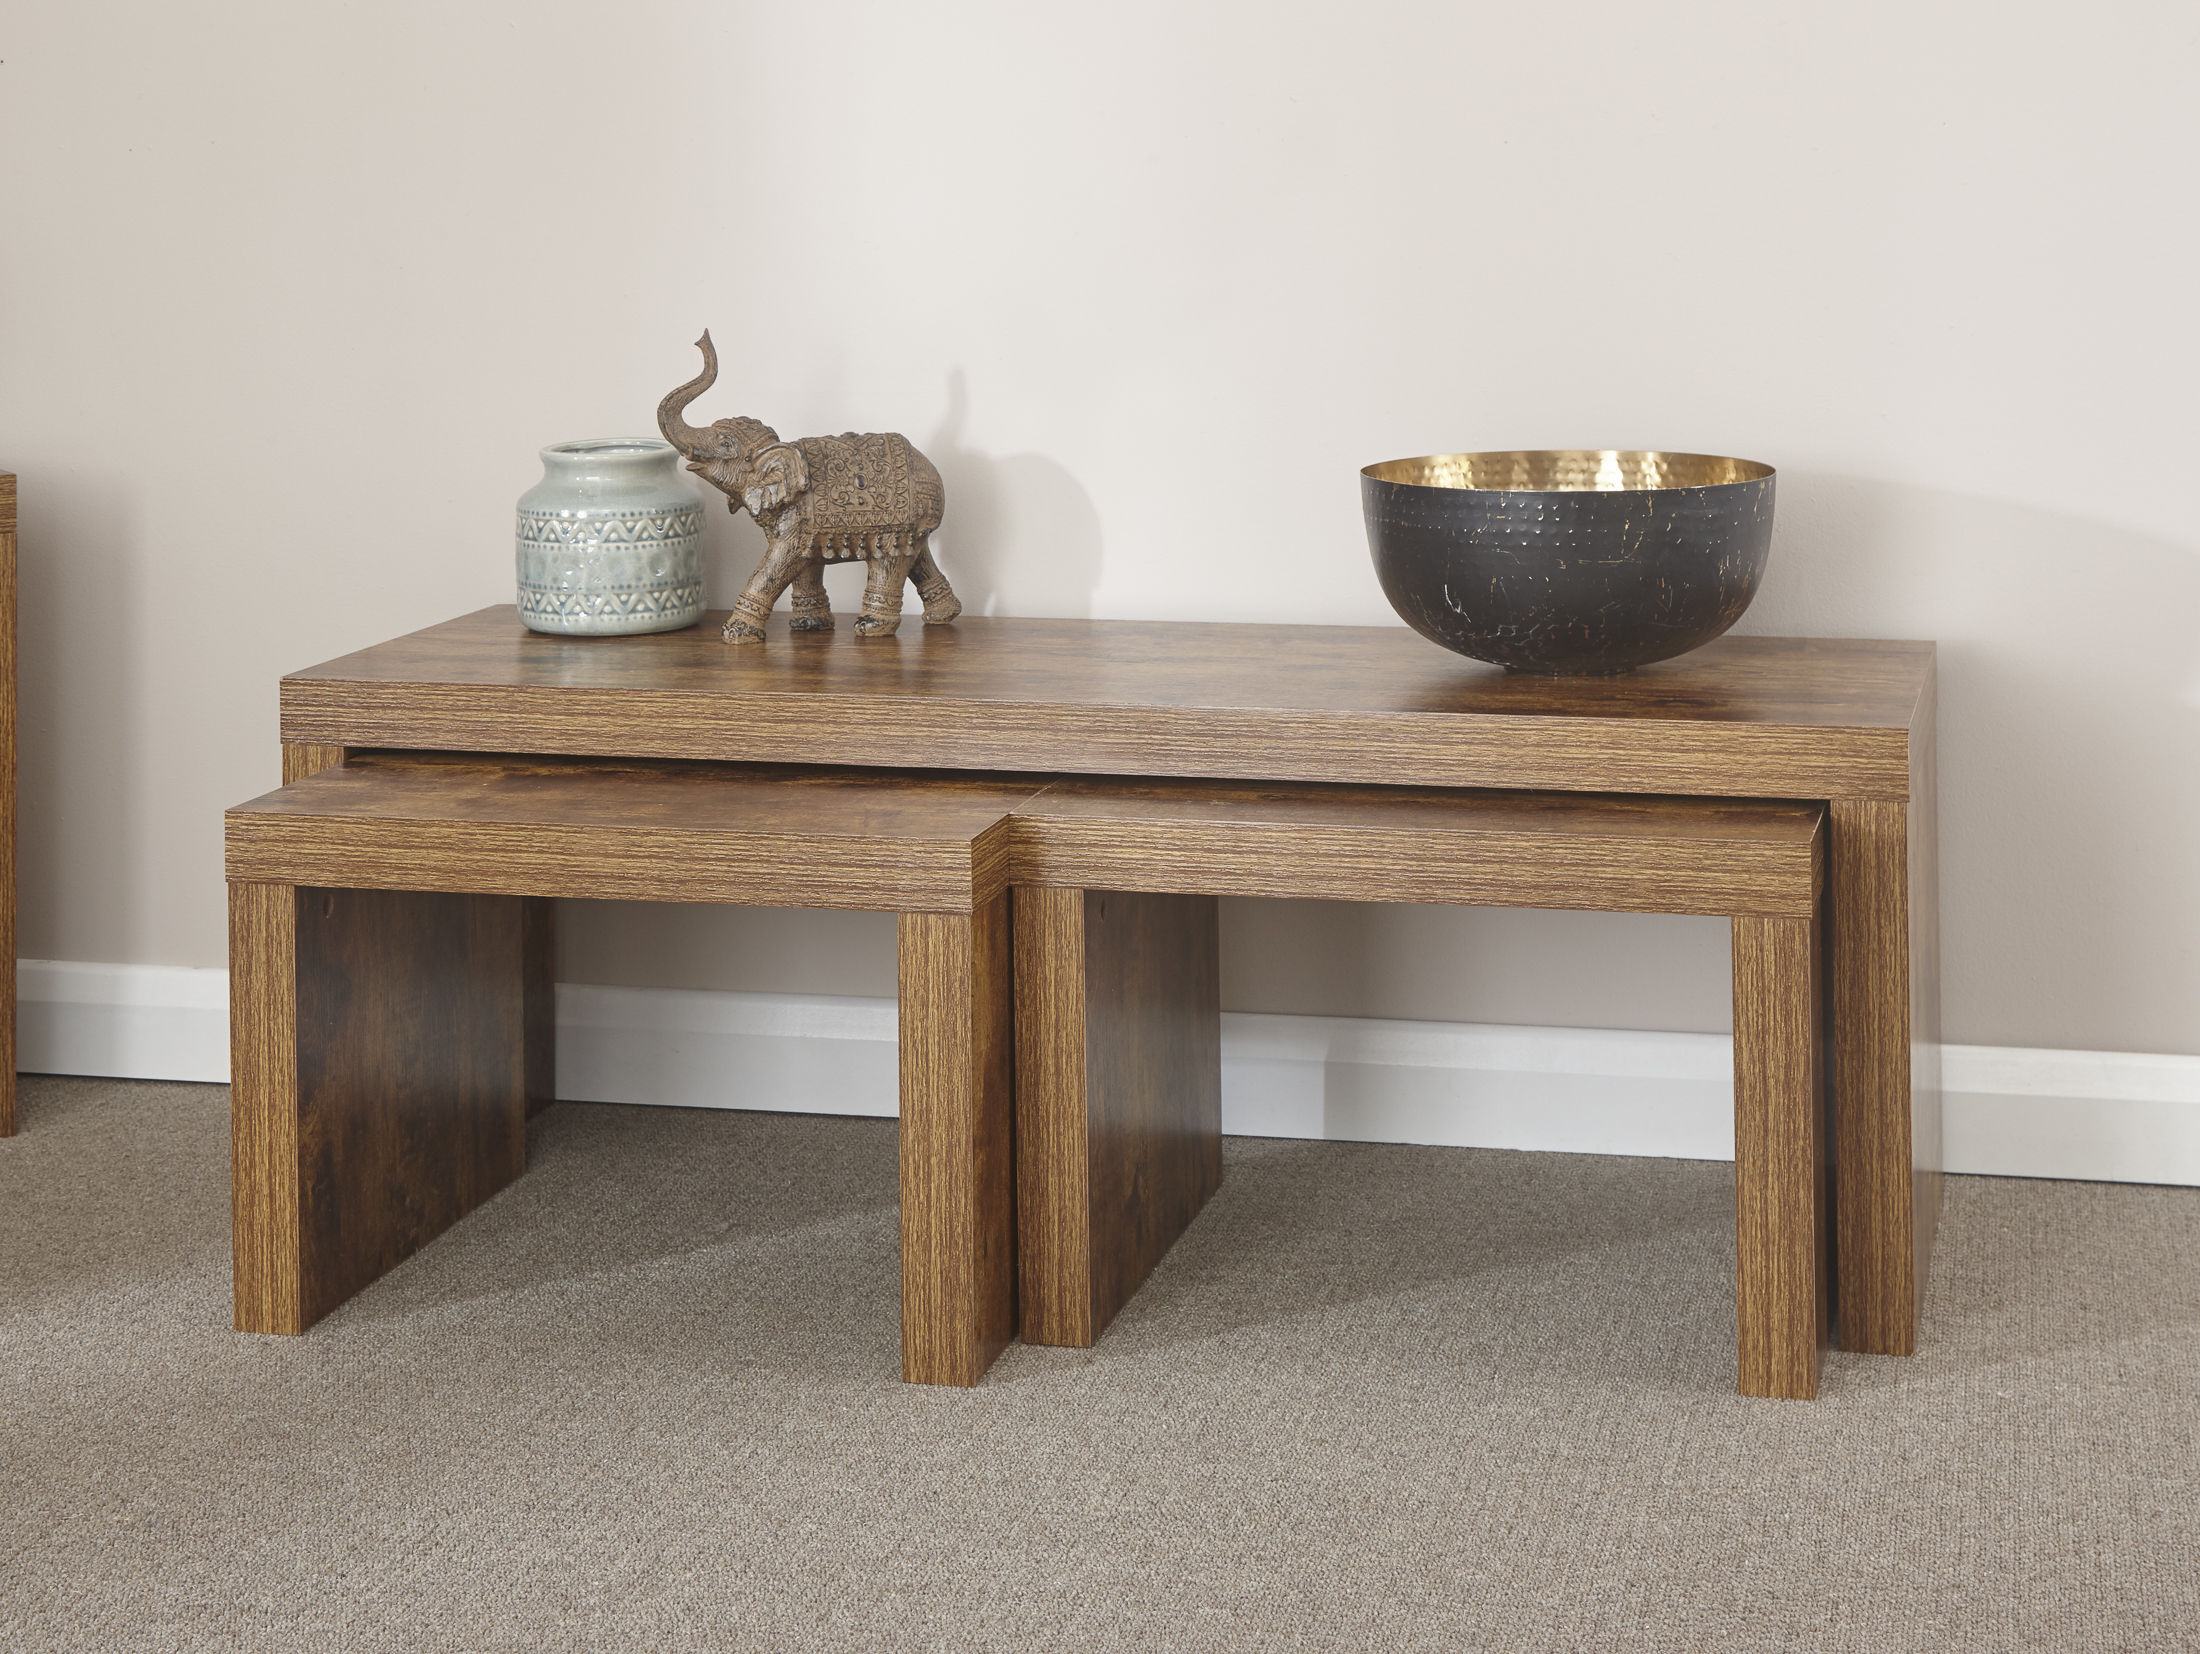 Jakarta Mango Wood Living Room Coffee Table Furniture UK Free Delivery Part 31